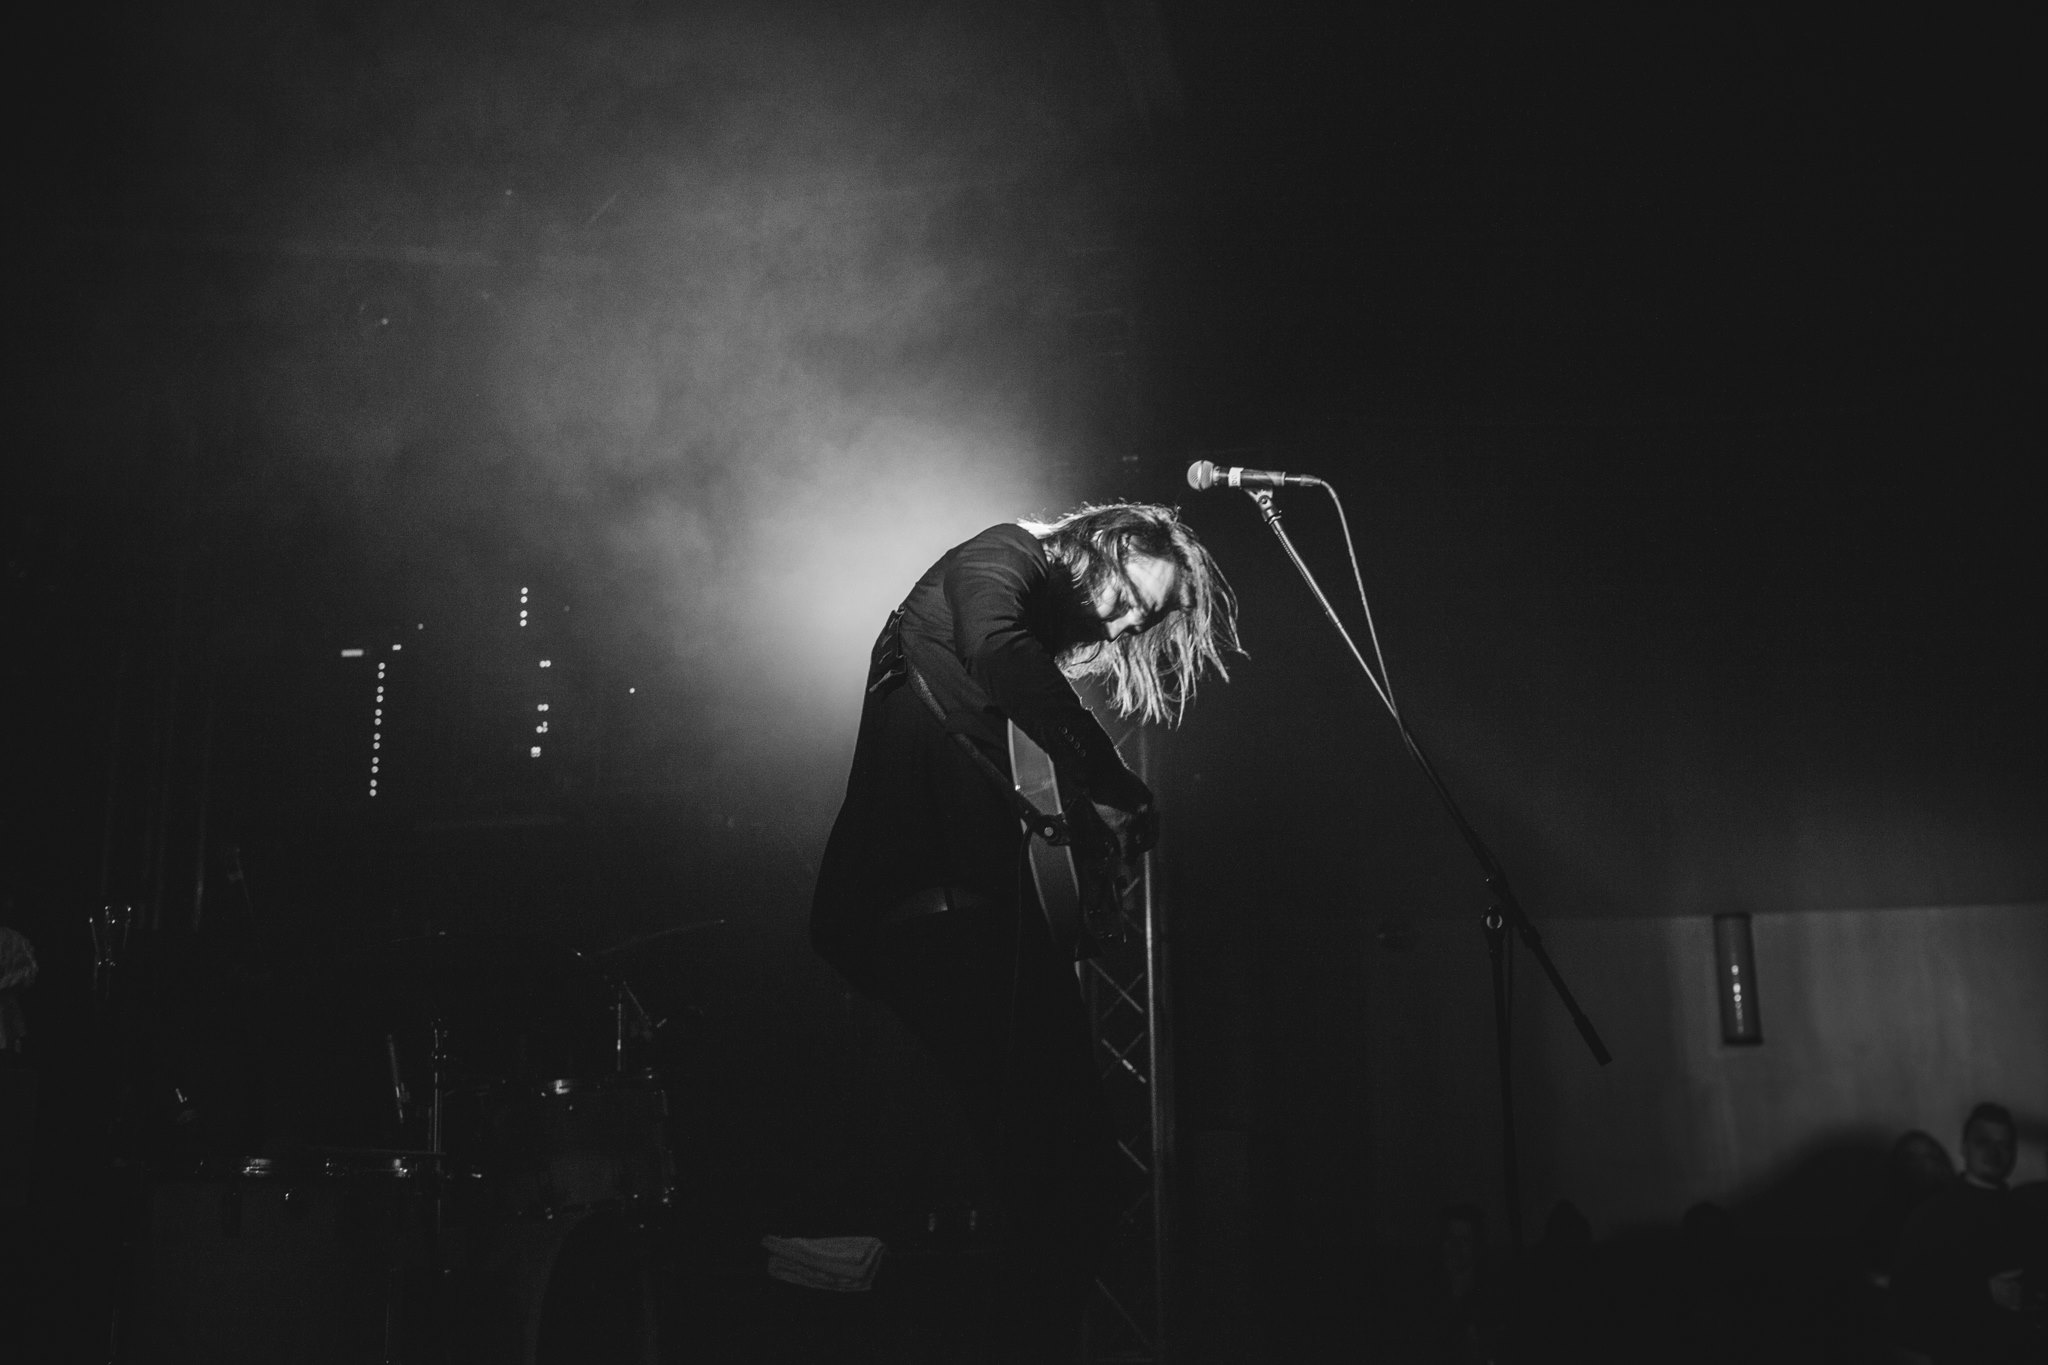 Brother Grimm live at Lido, Berlin 04.12.2016 with Coogans Bluff pic: http://20zollmedia.com